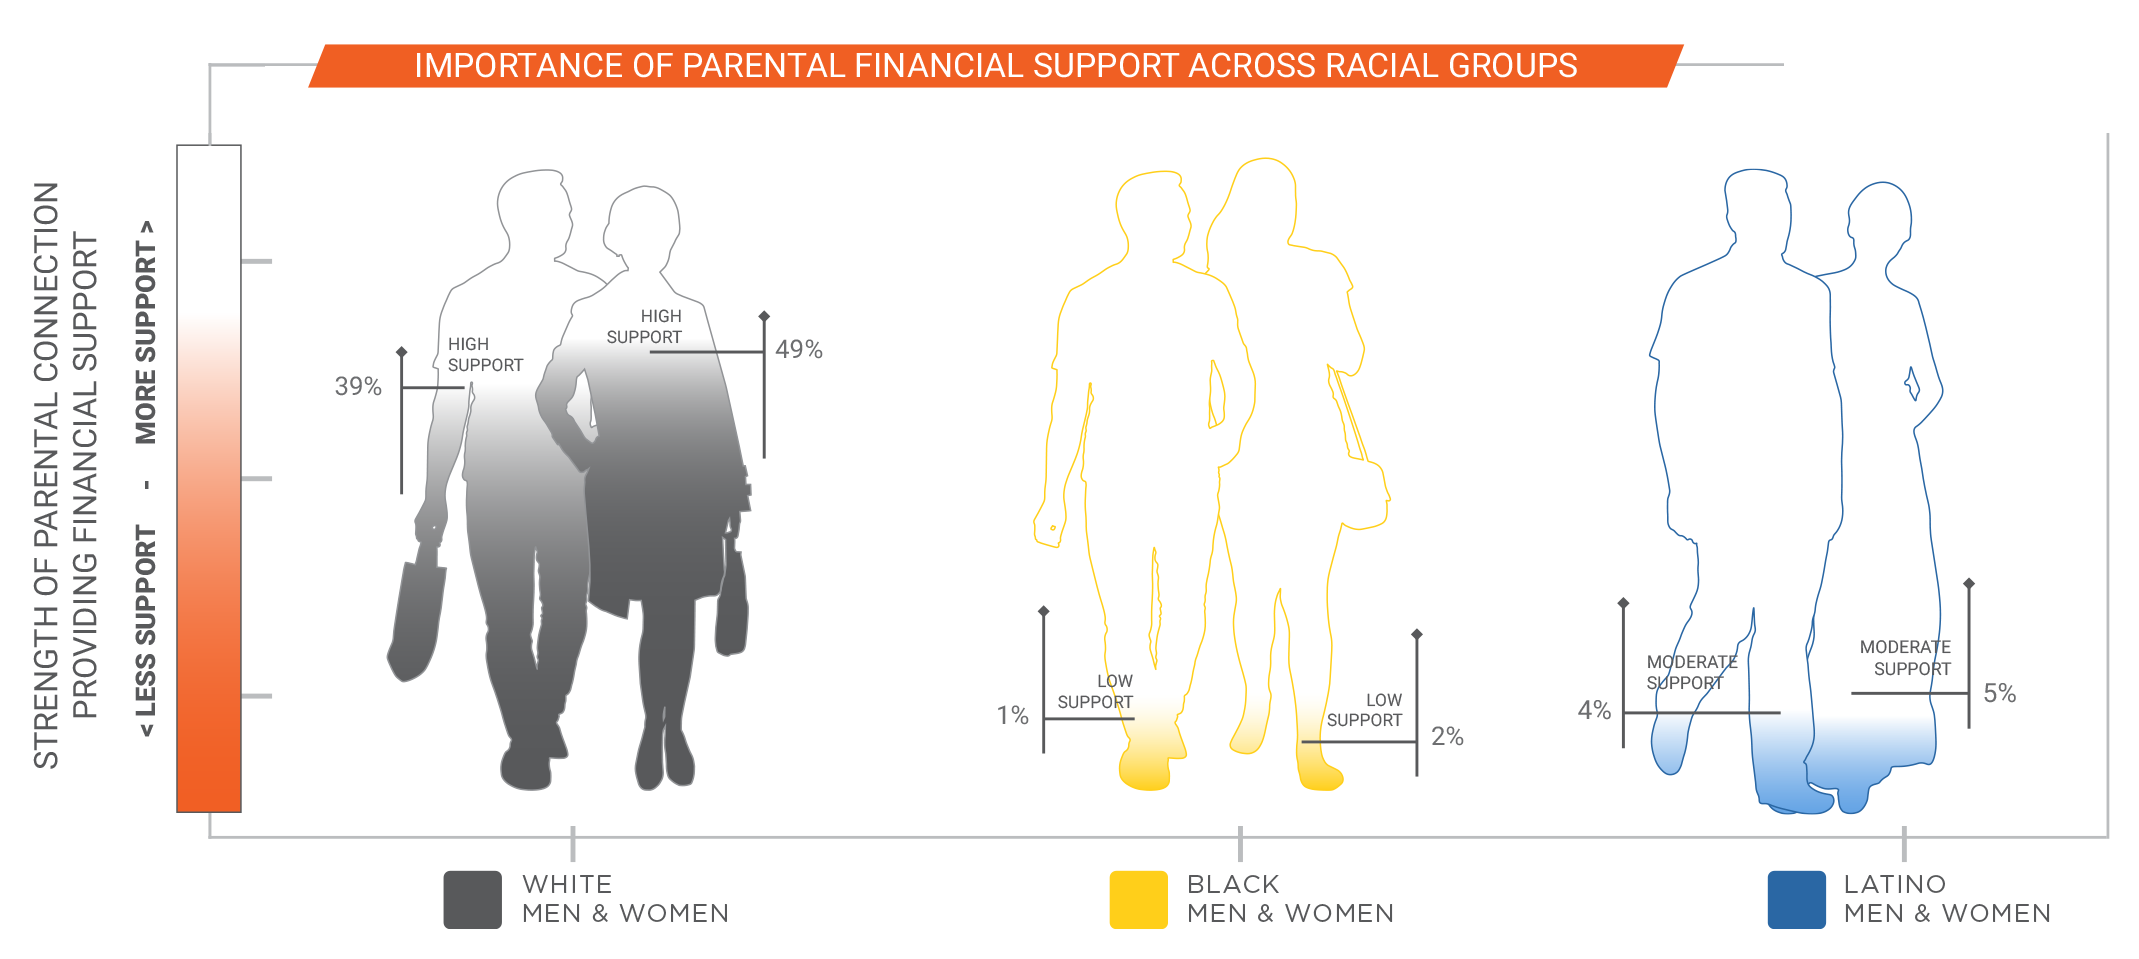 Importance of parental financial support across racial groups